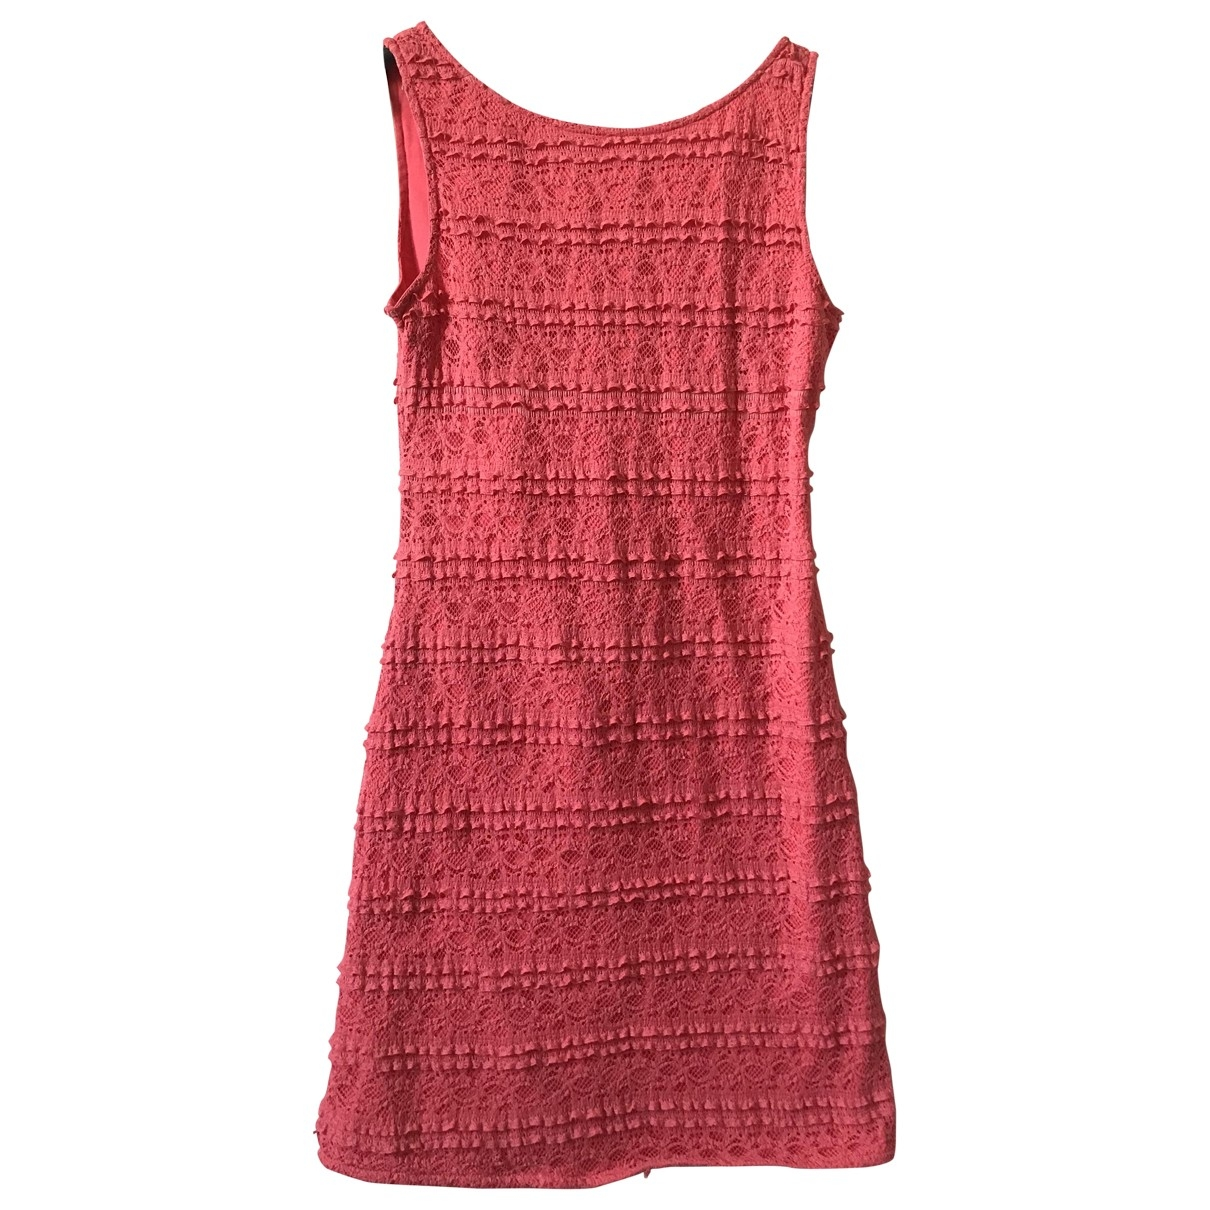 Patrizia Pepe \N Pink Cotton - elasthane dress for Women 38 IT